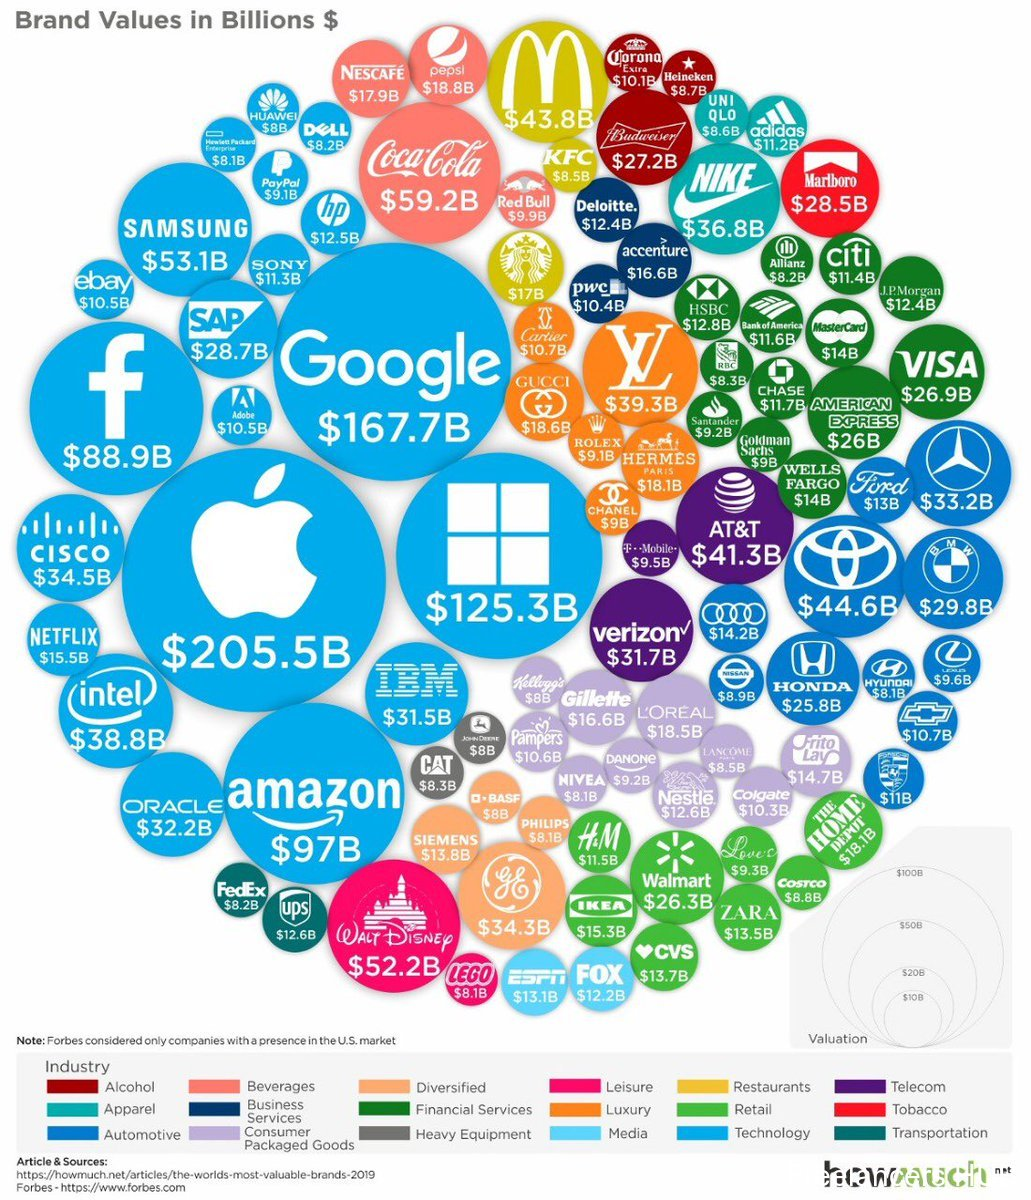 Look at this interesting #infographic: the most valued brands in 2019